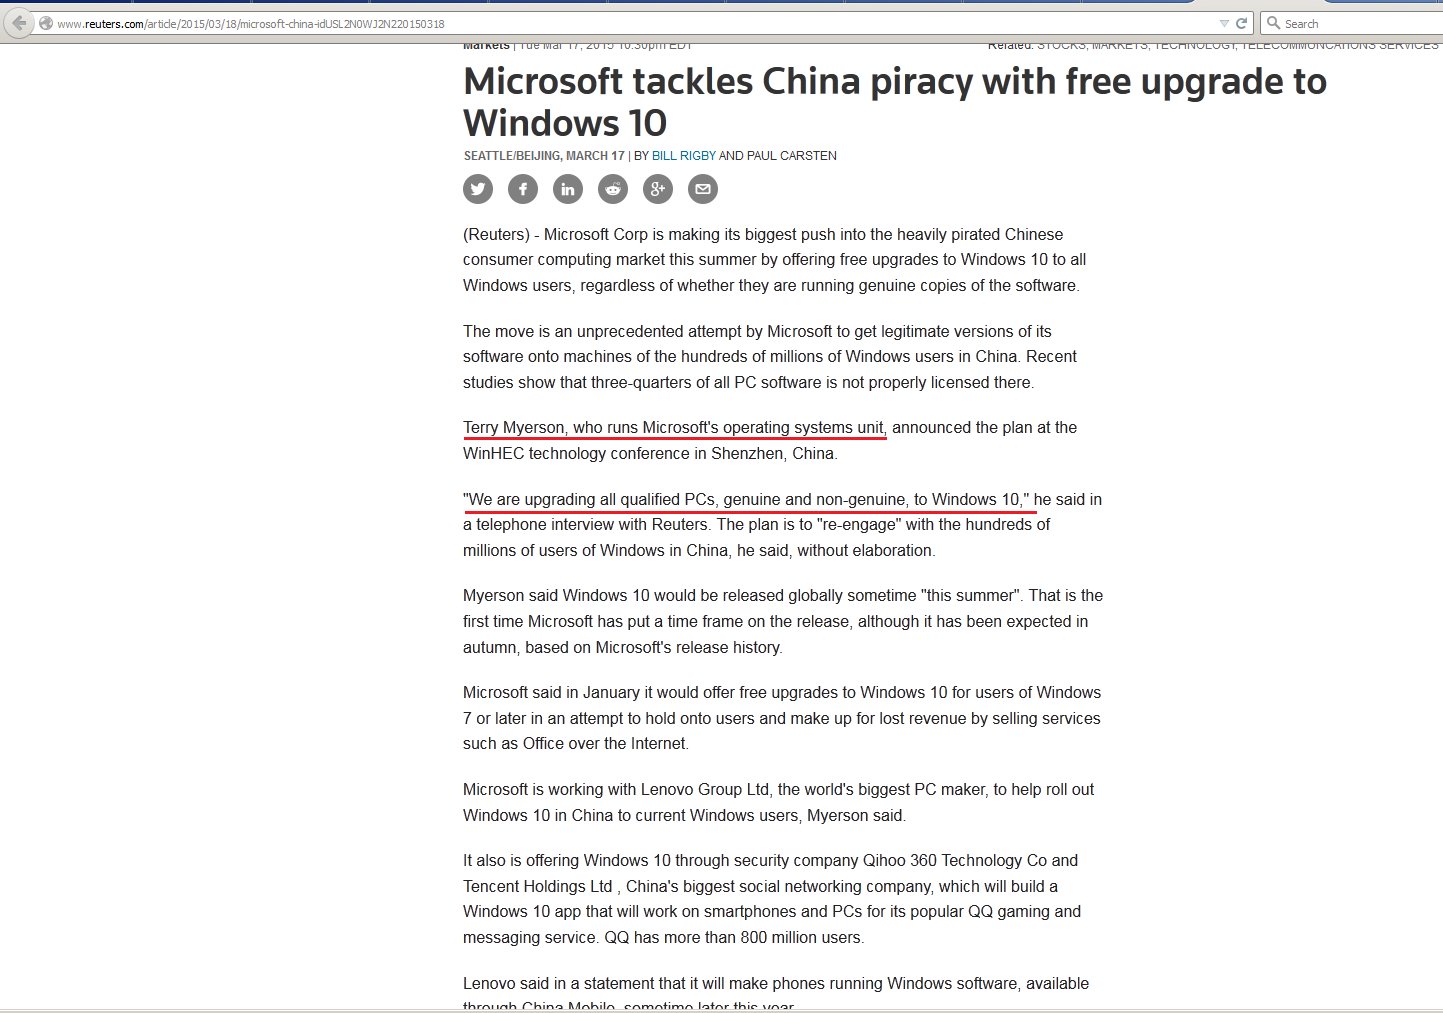 http://www.reuters.com/article/2015/03/18/microsoft-china-idUSL2N0WJ2N220150318